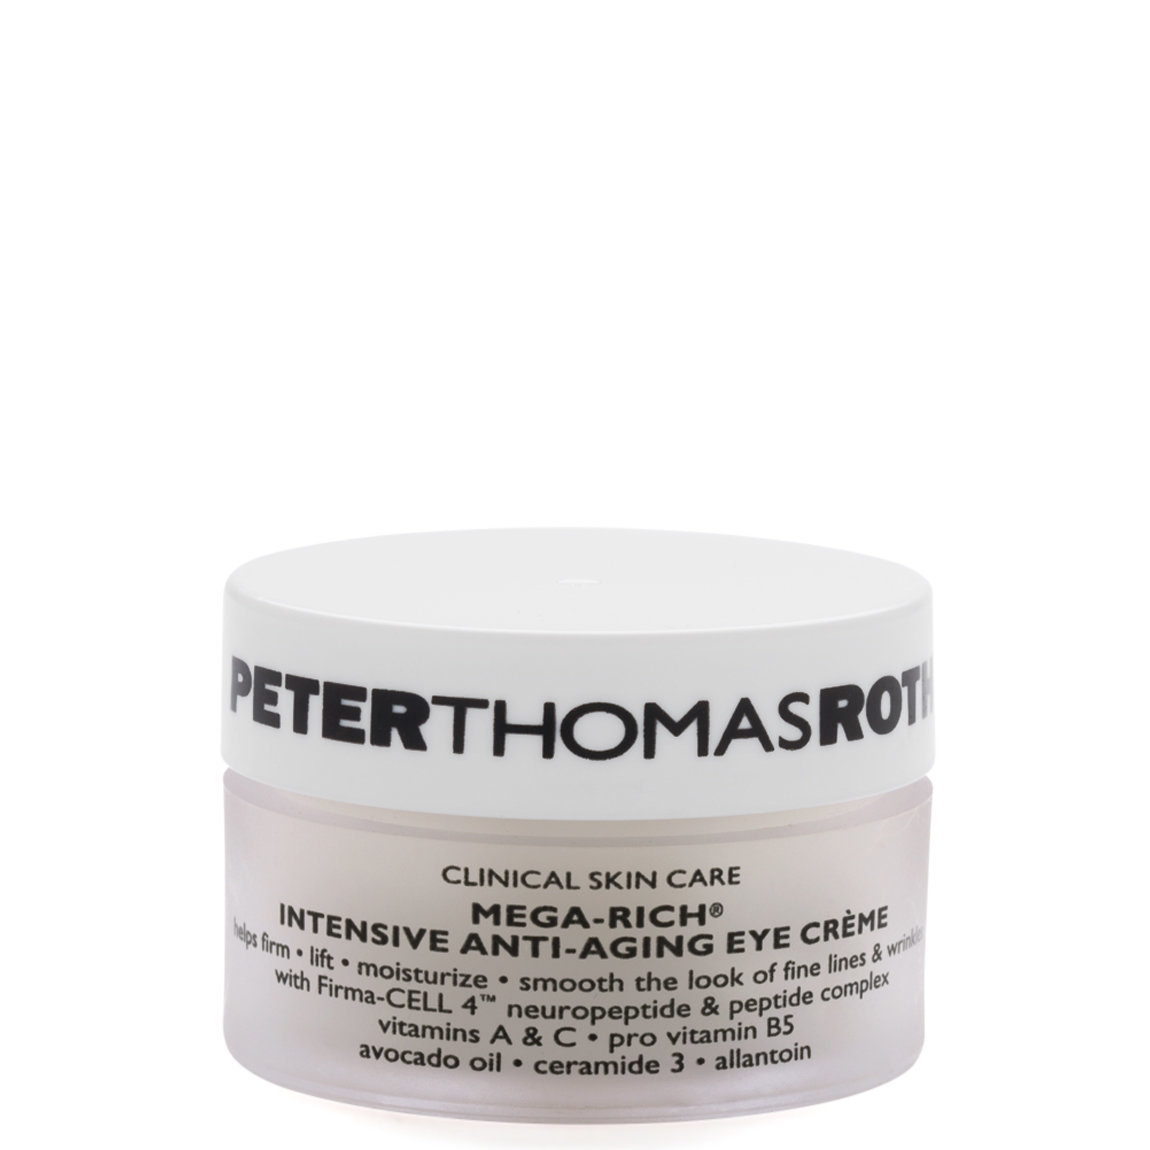 Peter Thomas Roth Mega-Rich Intensive Anti-Aging Cellular Eye Creme alternative view 1 - product swatch.